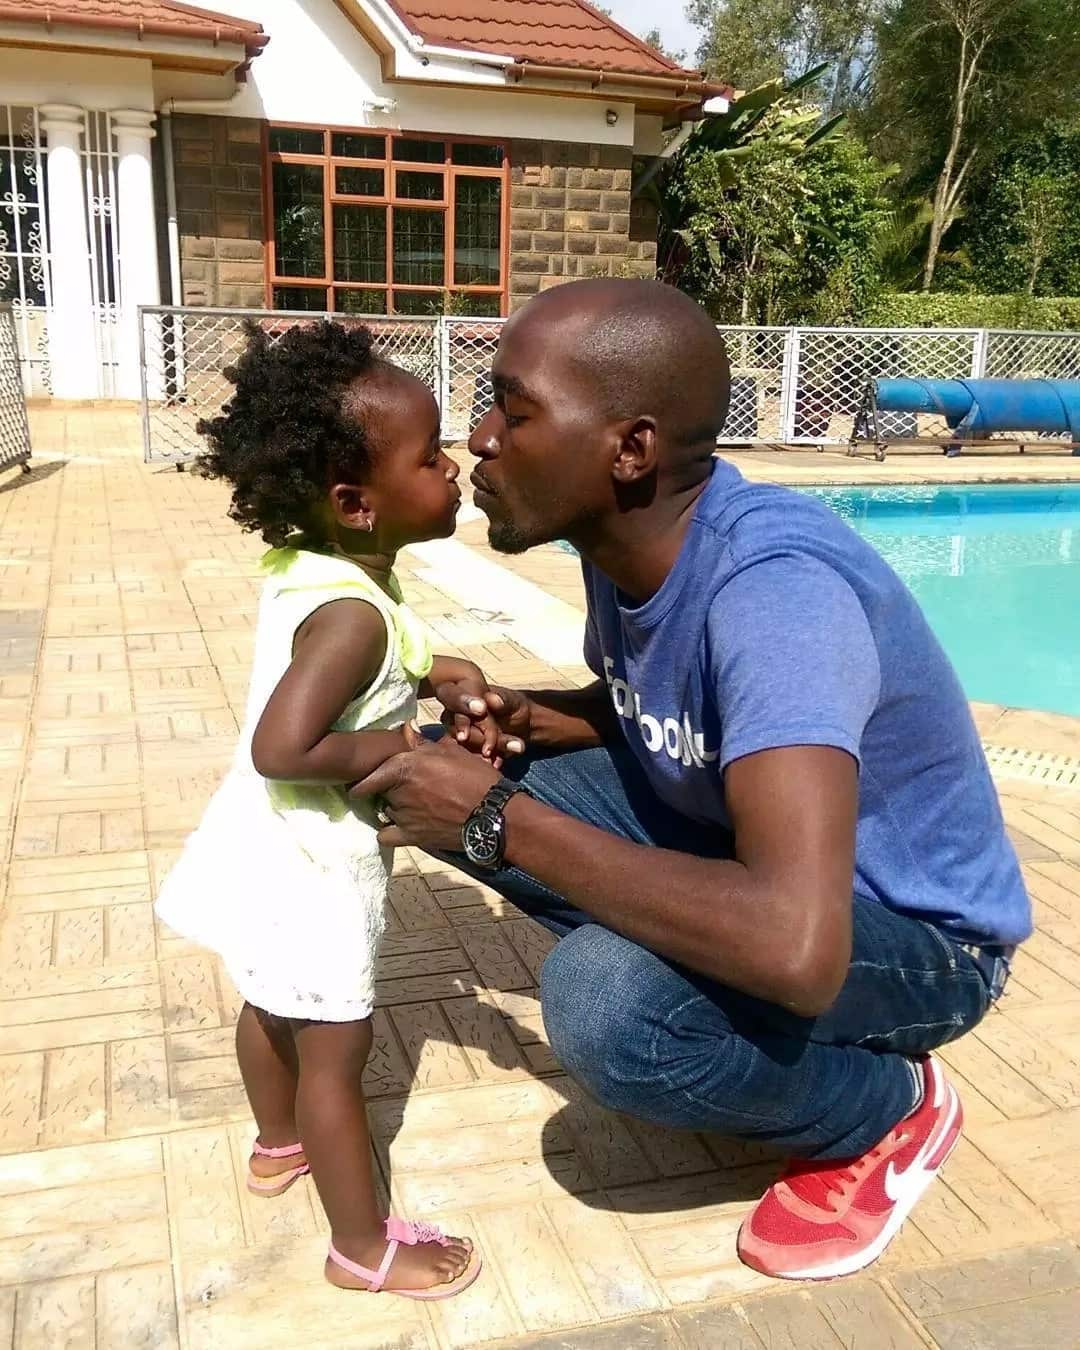 16 simply delightful photos of Citizen TV Patrick Igunza's wife and kids